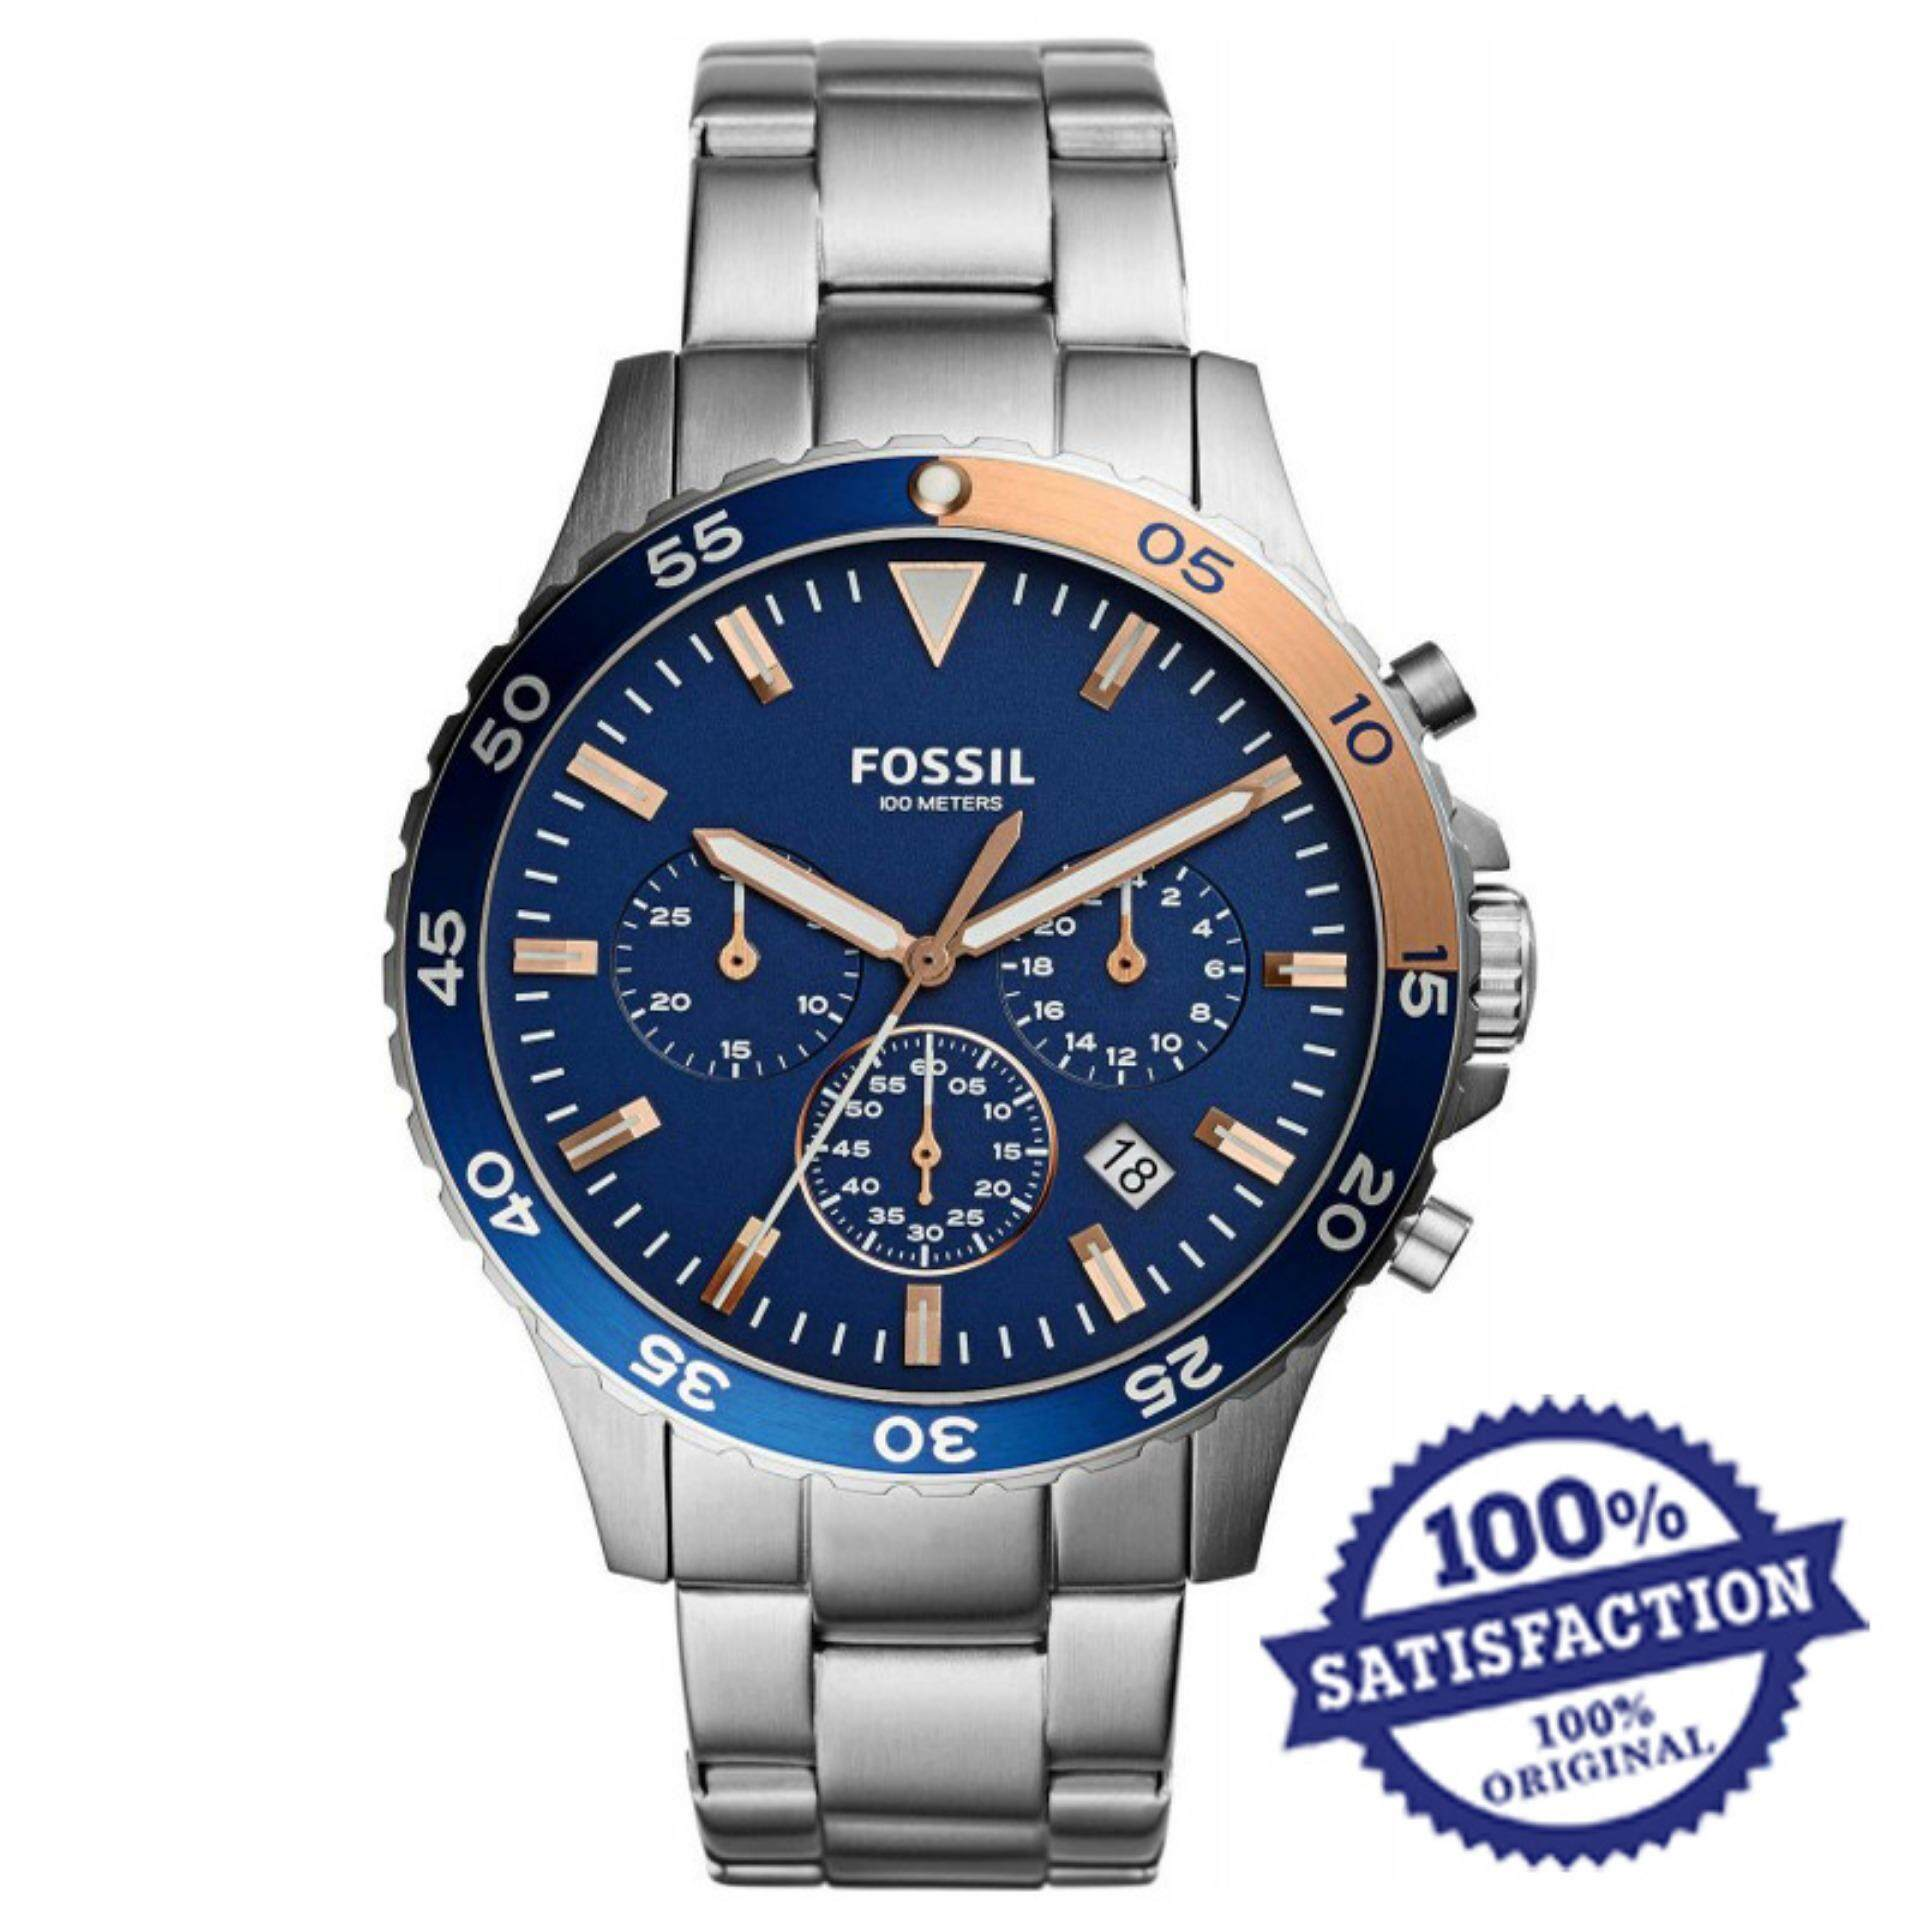 Fossil Ch2600 Jam Tangan Pria Stainless Steel Bracelet Silver Decker Chronograph Ch3059 Watch Blue Dial